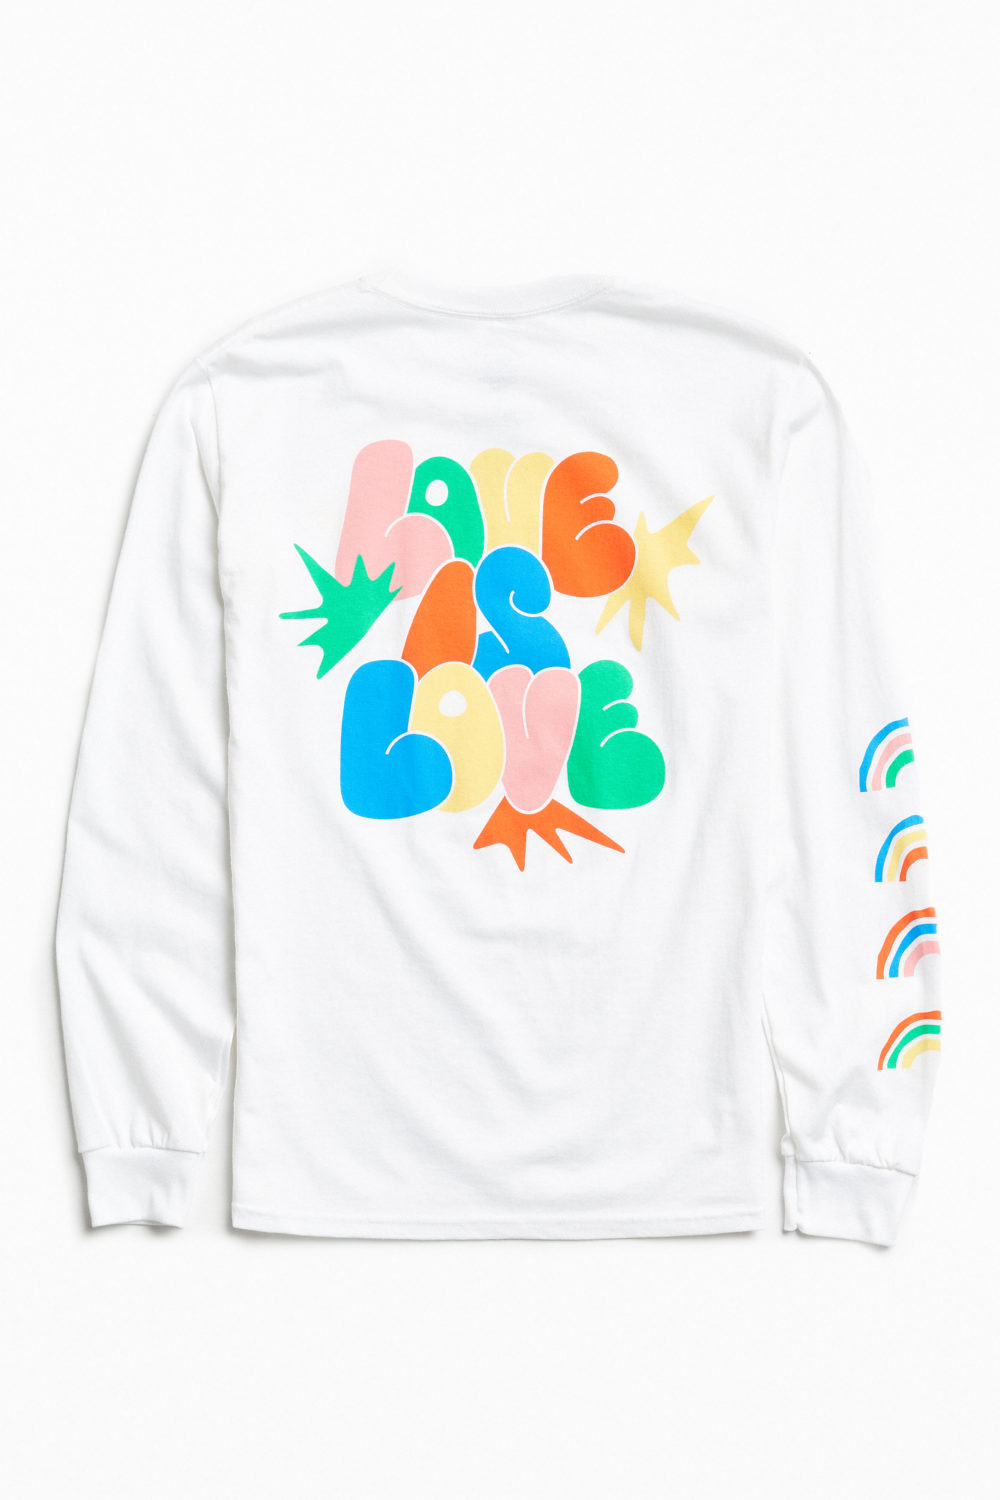 Urban Outfitters collection for Pride is a '70s graphic tee dream